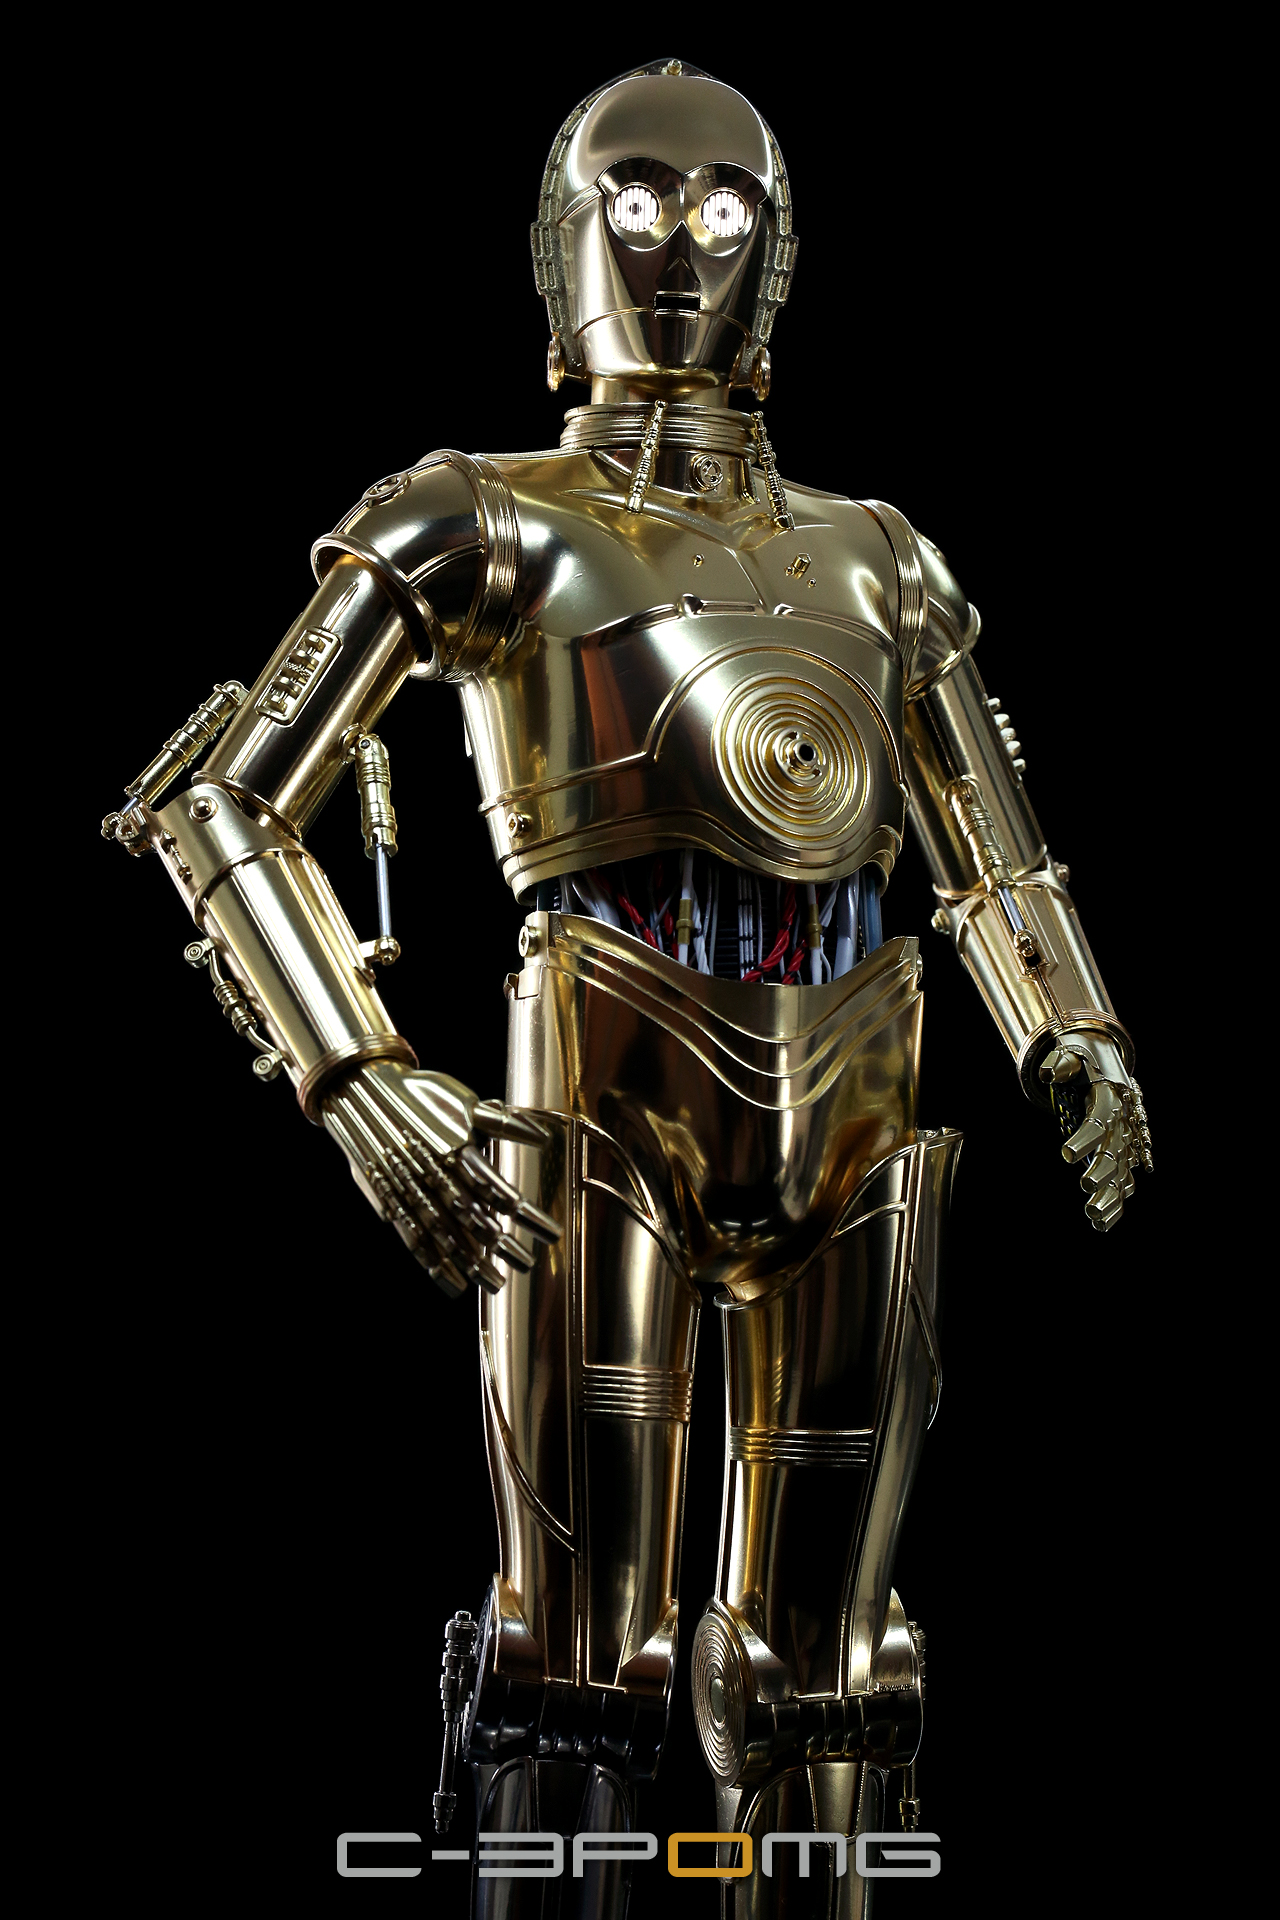 [Bandai] Star Wars: C-3PO - Perfect Model 1/6 scale - LANÇADO!!! - Página 2 C-3PO1022_zps15ce21cf